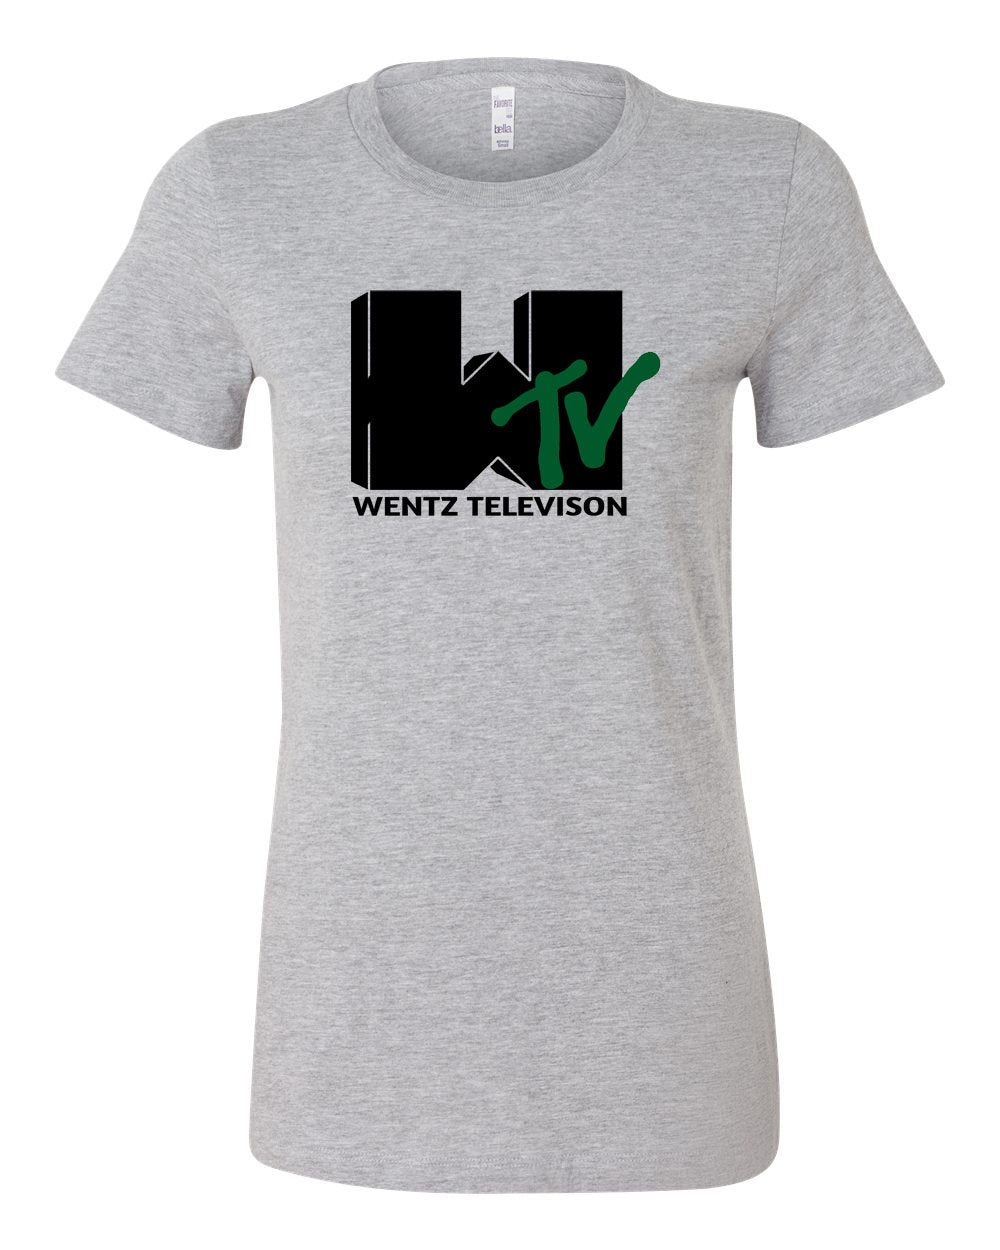 Wentz TV LADIES Junior-Fit T-Shirt